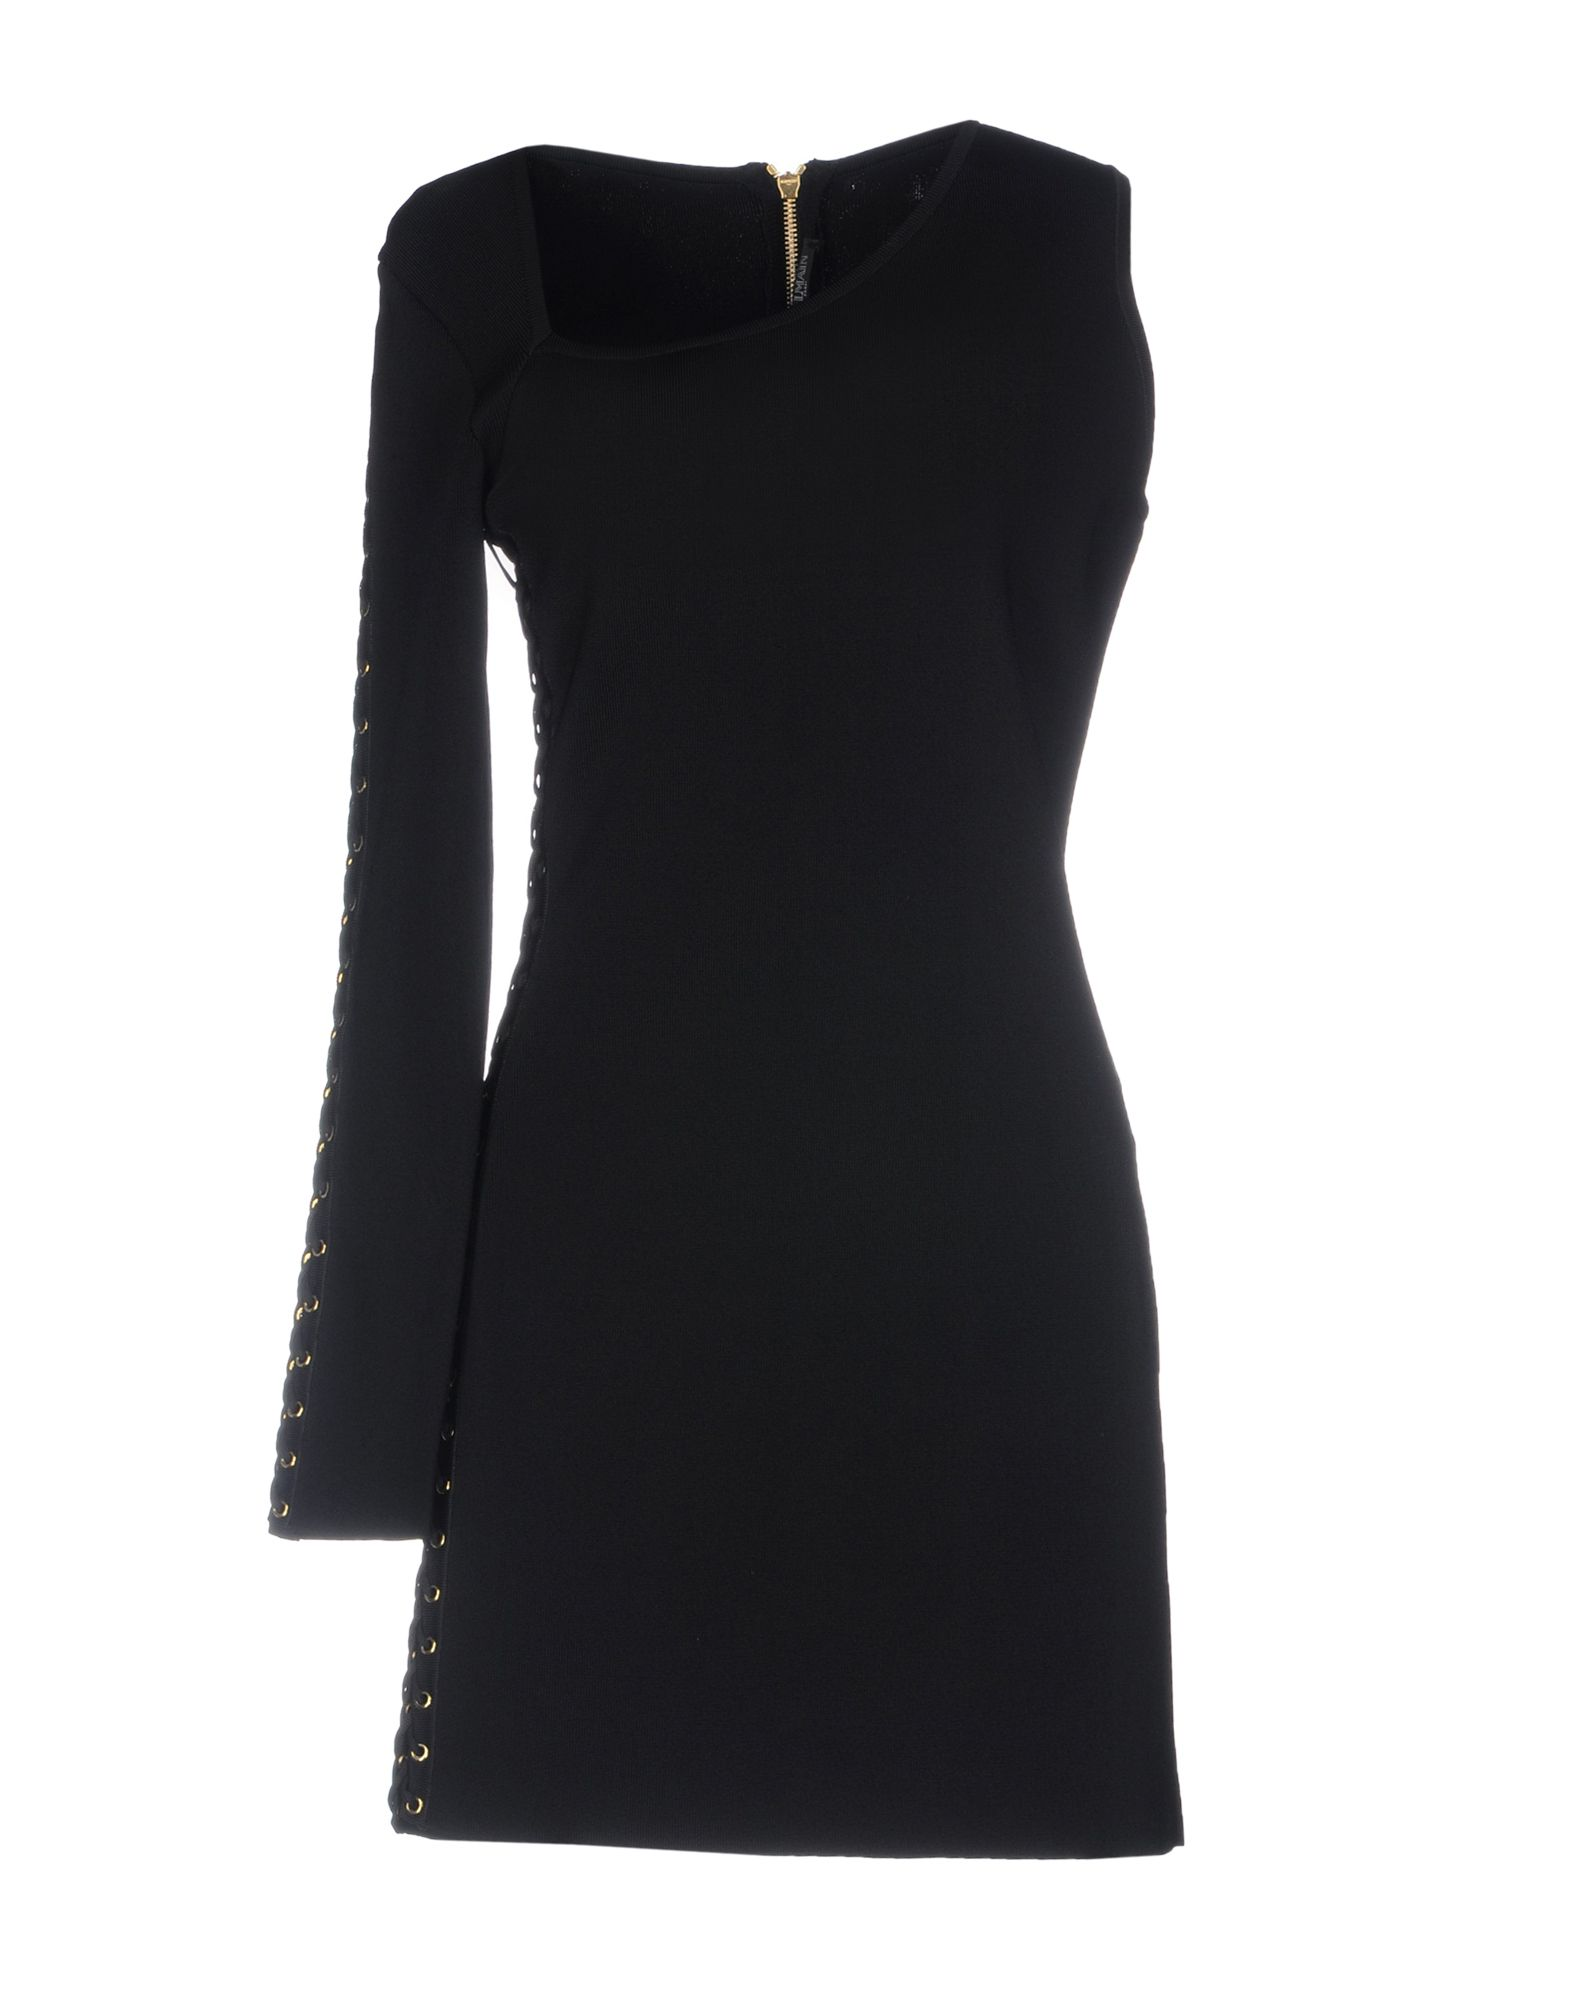 BALMAIN Short dresses. Knitted Laces Metal Applications Solid color V-neck Sleeveless No pockets Unlined Rear closure Zip Lightweight sweater Pencil style Small sized. 89% Viscose, 10% Polyamide, 1% Elastane